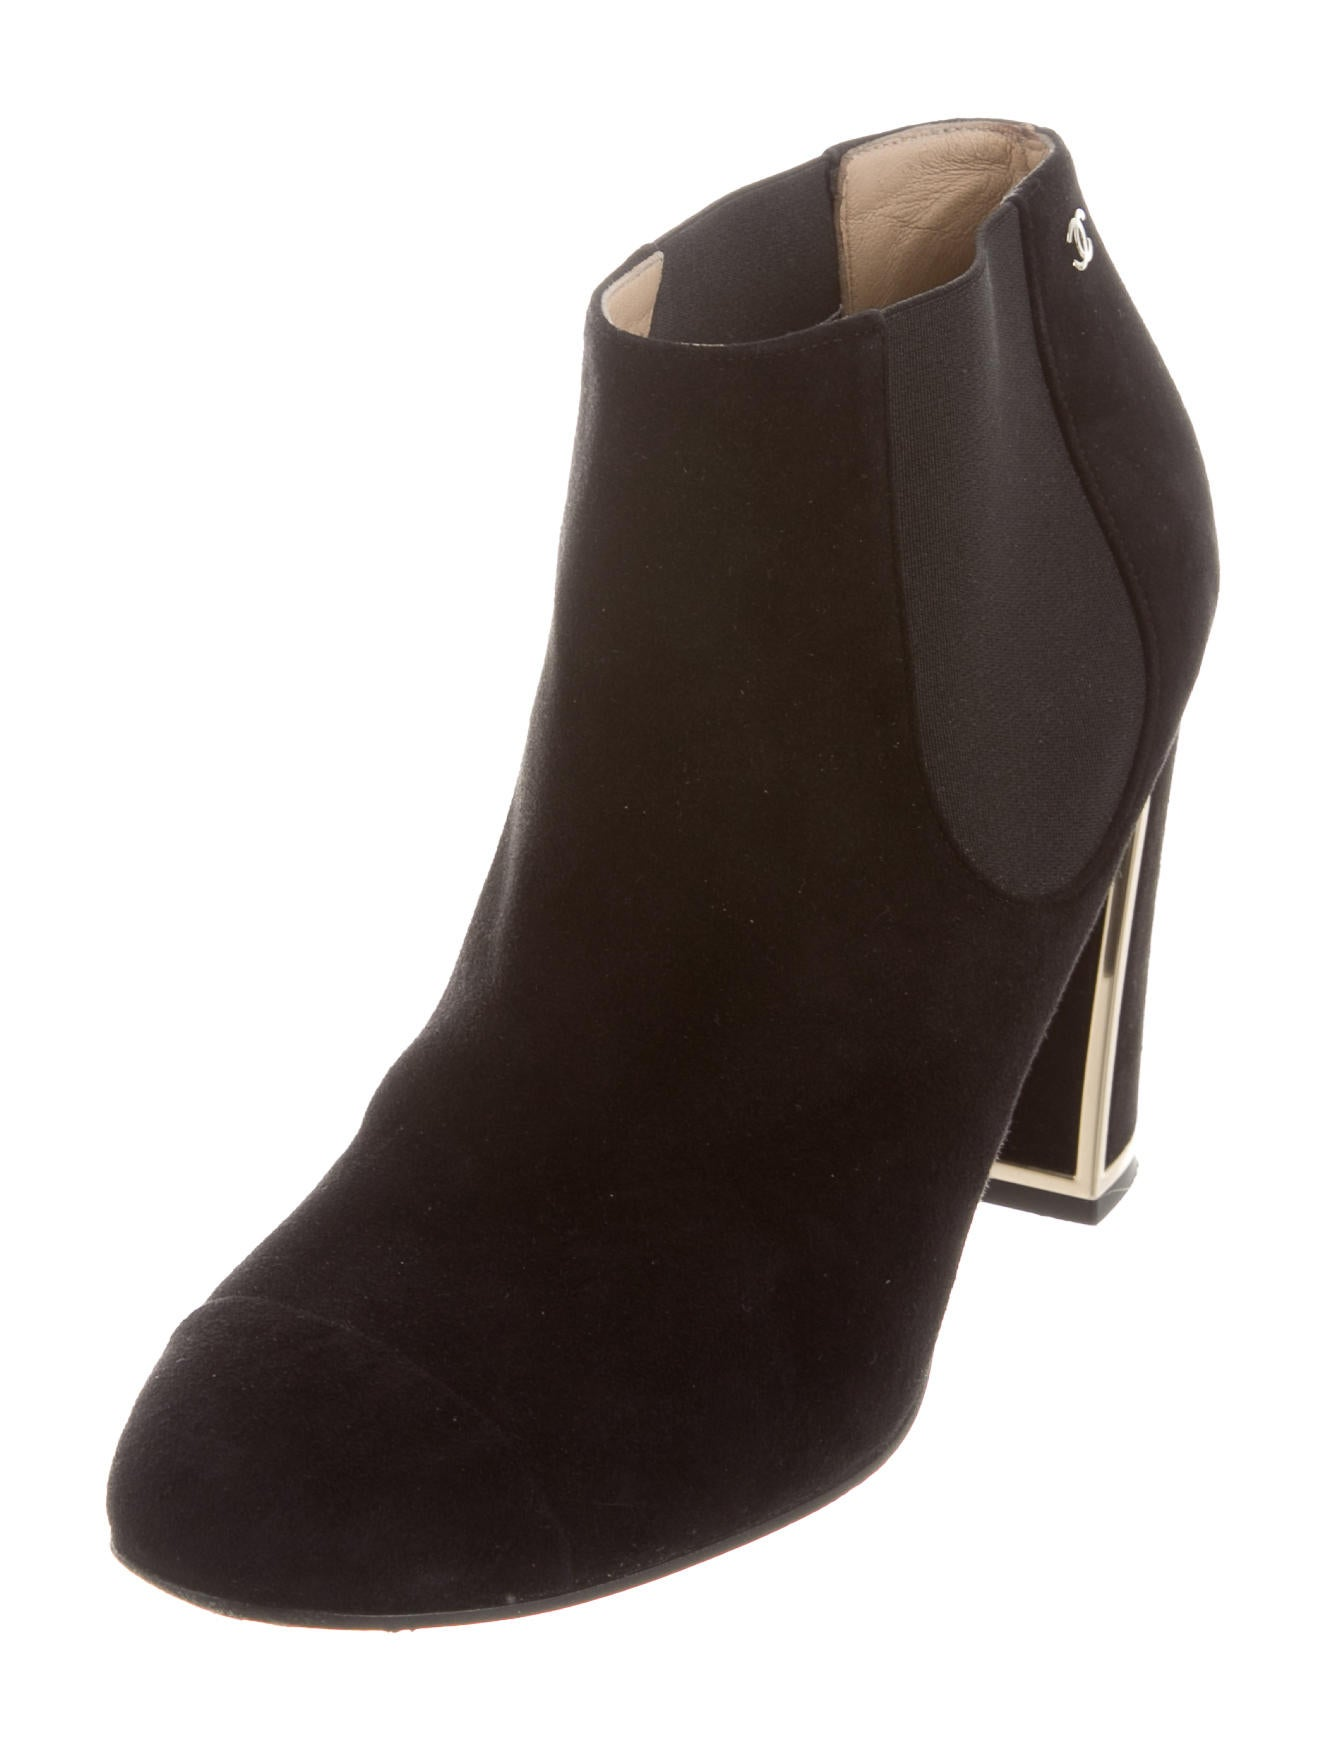 chanel suede ankle boots shoes cha159879 the realreal